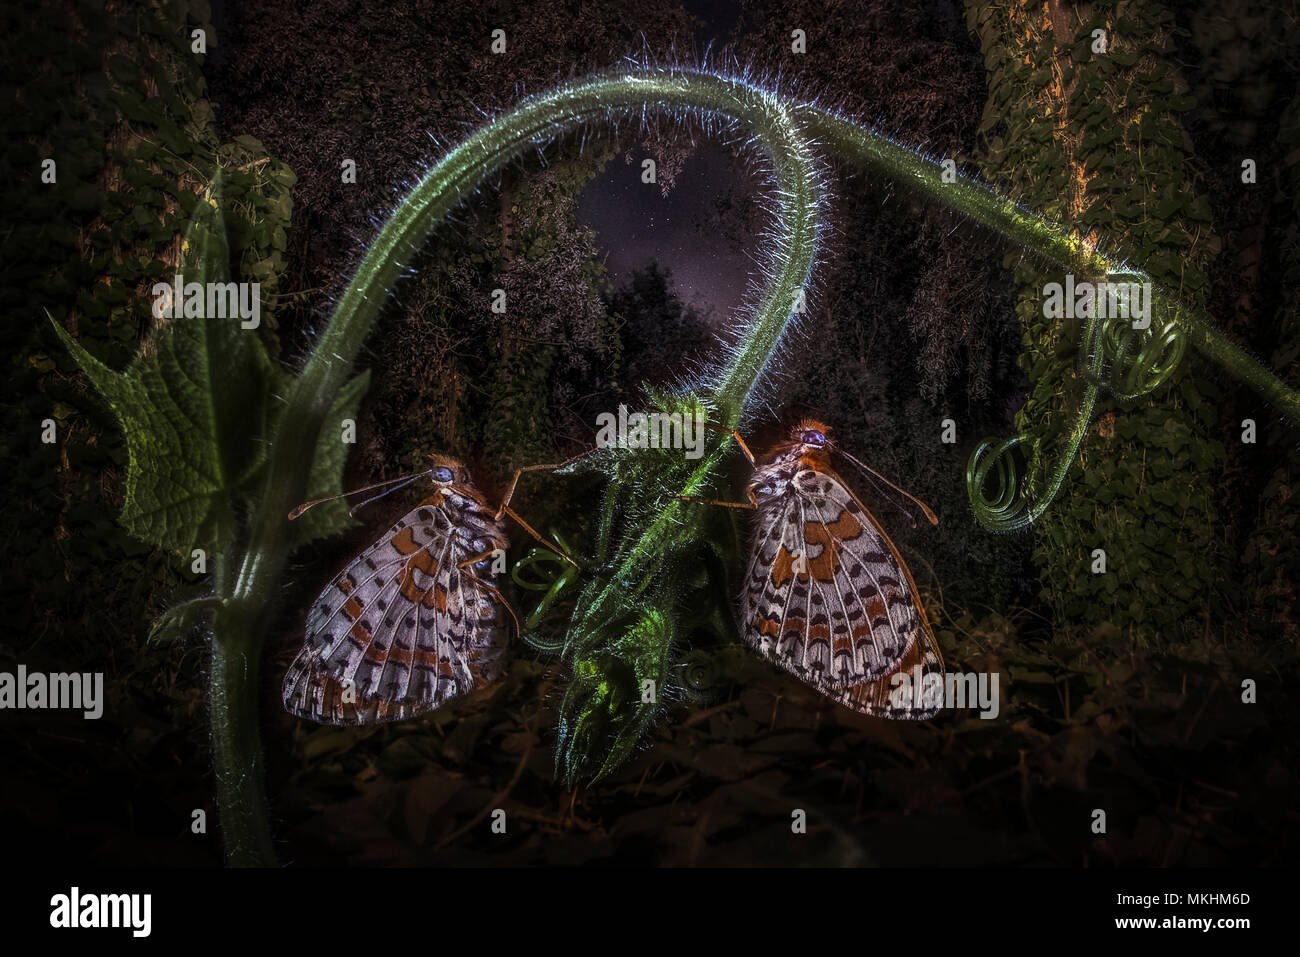 Two butterflies Fritillary (Melitaea sp) resting in a forest at night, Mantova Lombardy, Italia - Stock Image